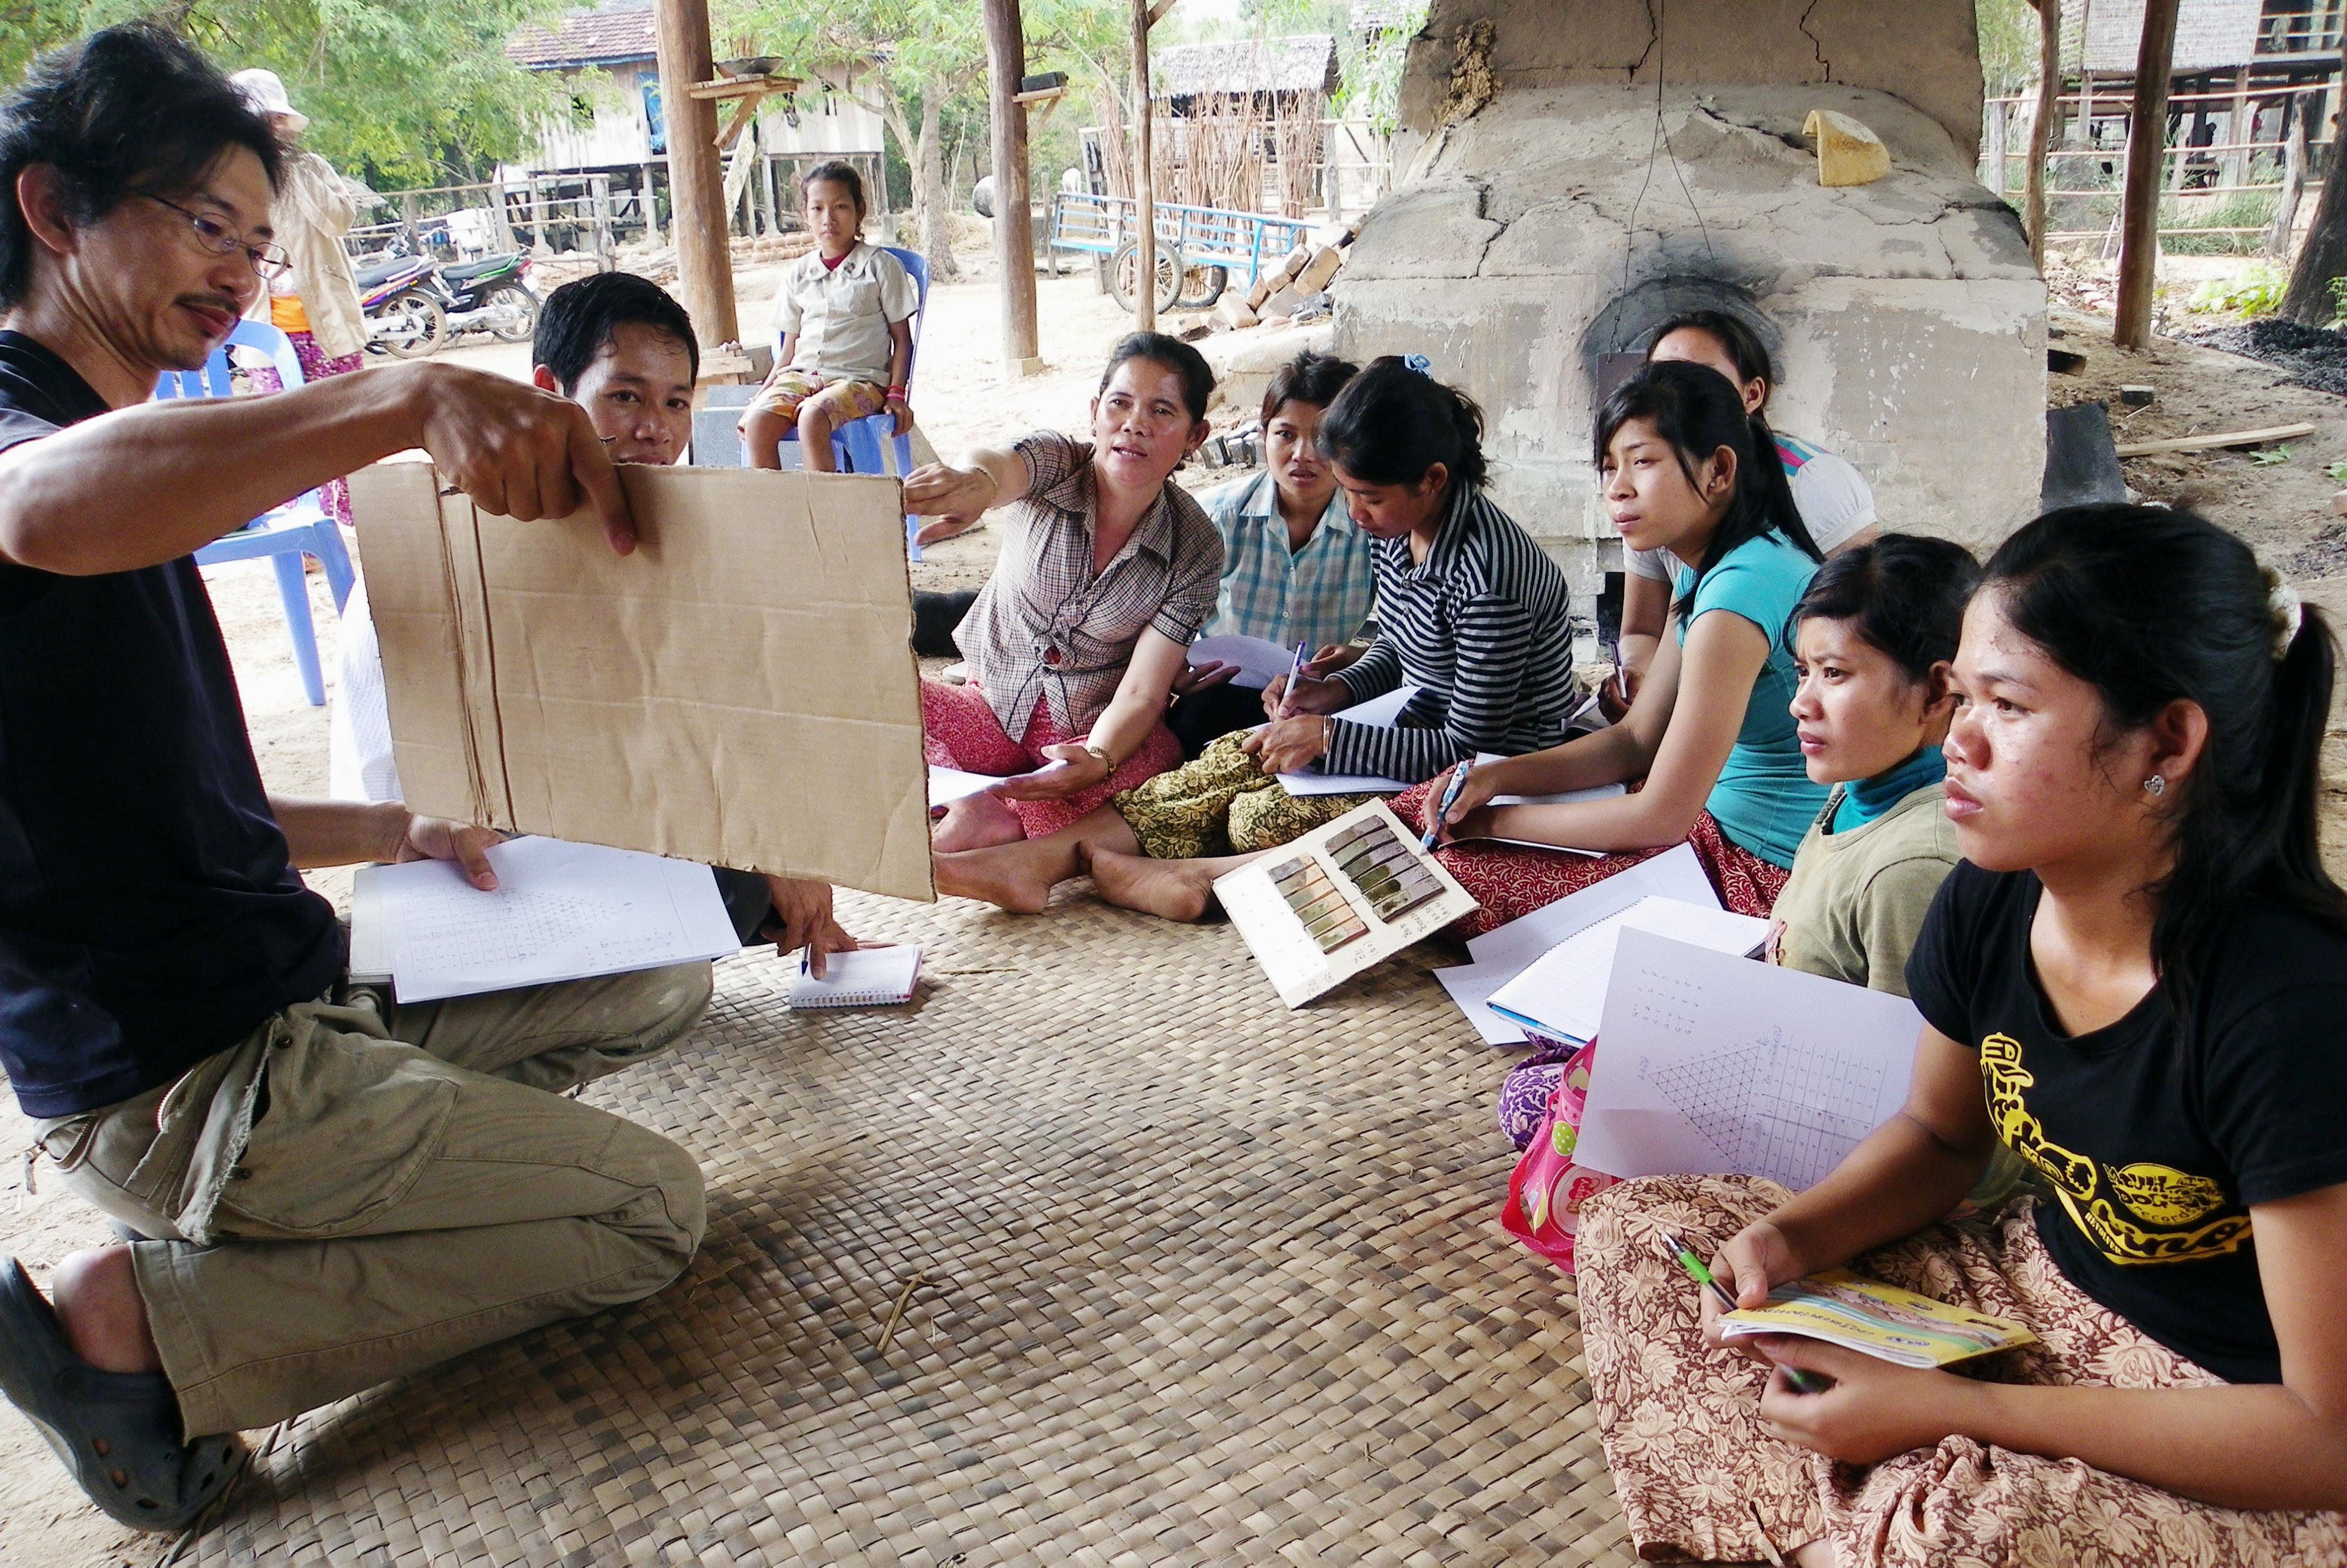 Shinsuke Iwami (left) explains how to glaze ceramics to Cambodian potters at a village in the central Cambodian province of Kampong Chhnang in February 2010. | SHINSUKE IWAMI / VIA KYODO